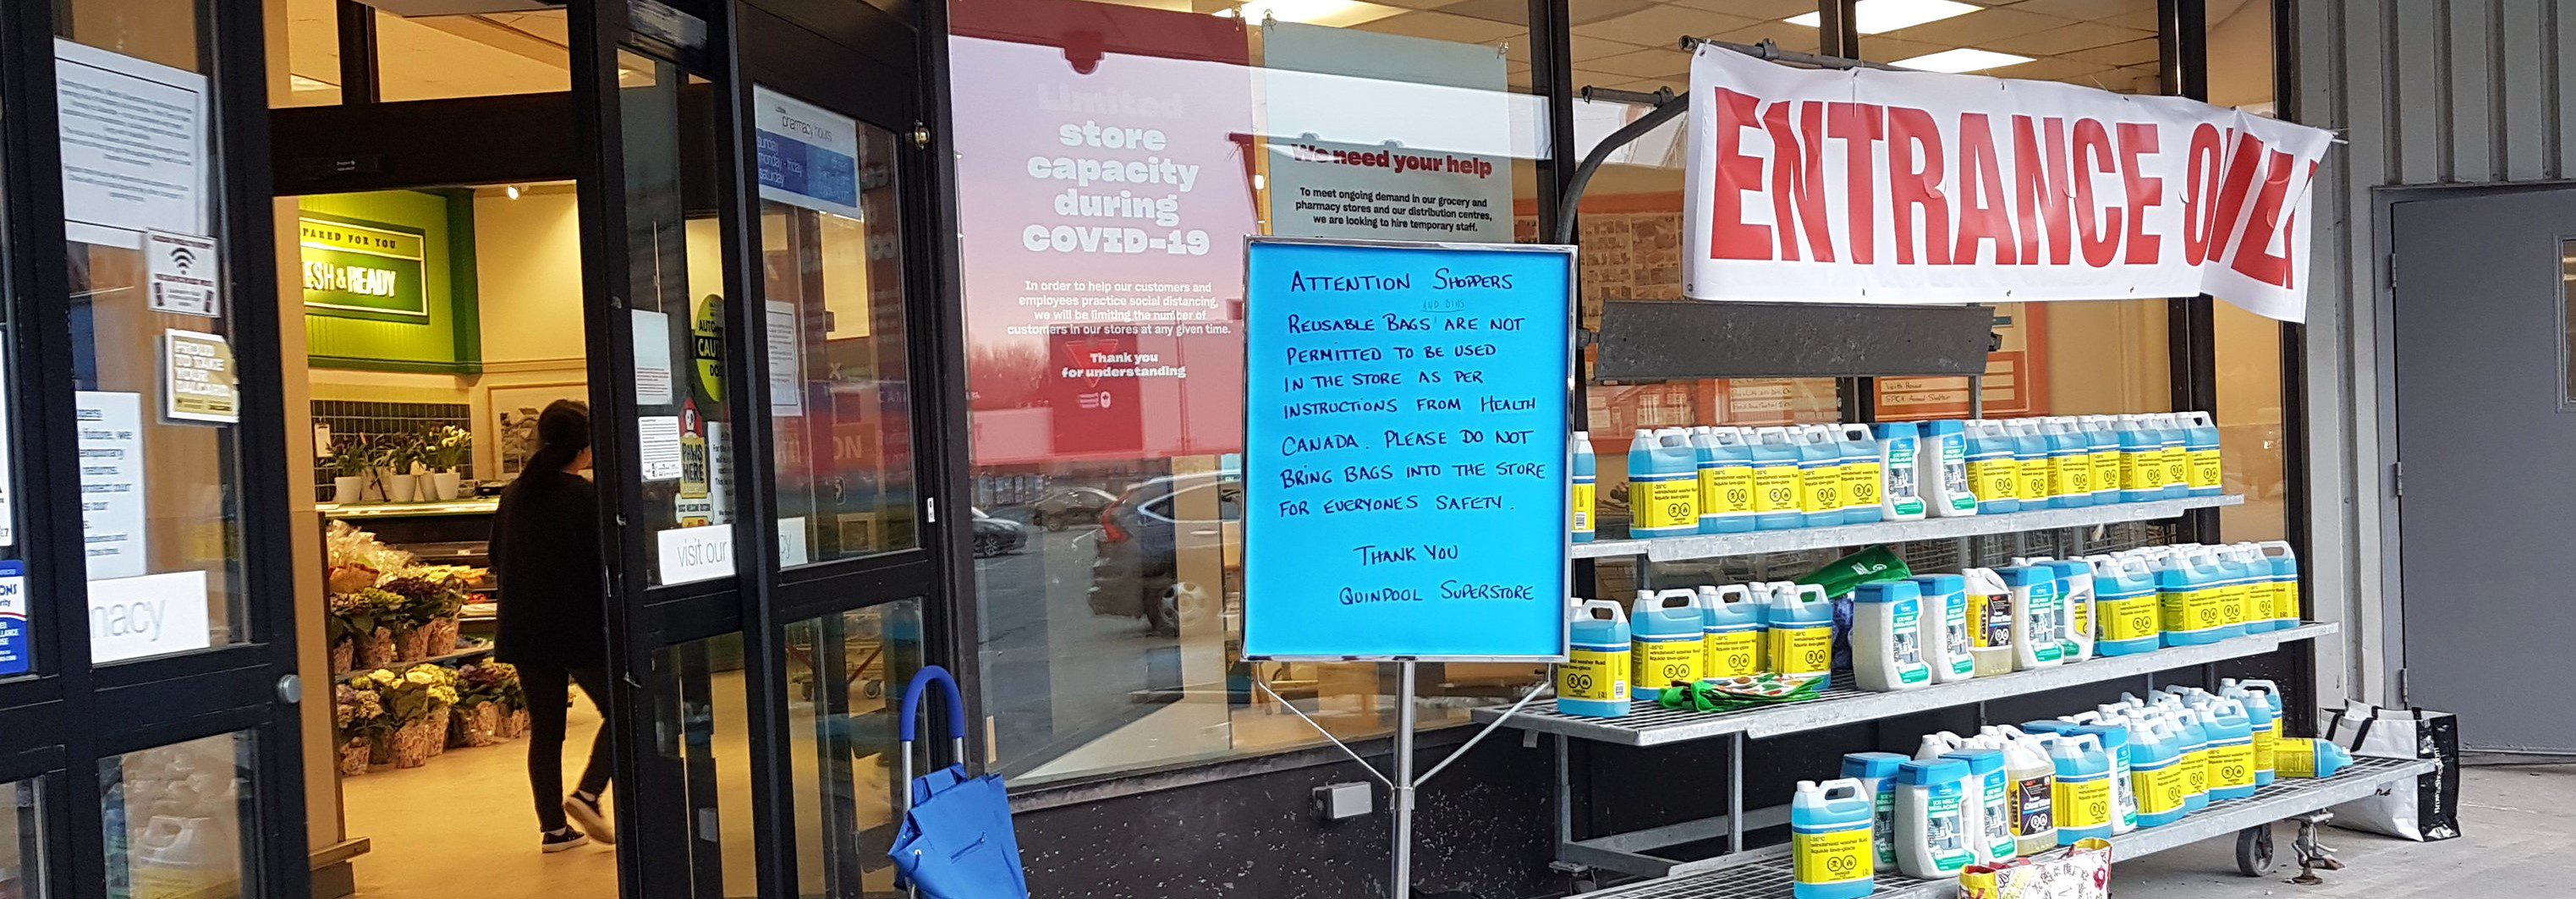 A sign in front of an Atlantic Superstore grocery store in Halifax, Nova Scotia, Canada, on April 8, 2020, is advising customers to leave reusable cotton bags outside of the store and not bring them inside for public health reasons during the coronavirus / covid-19 pandemic.